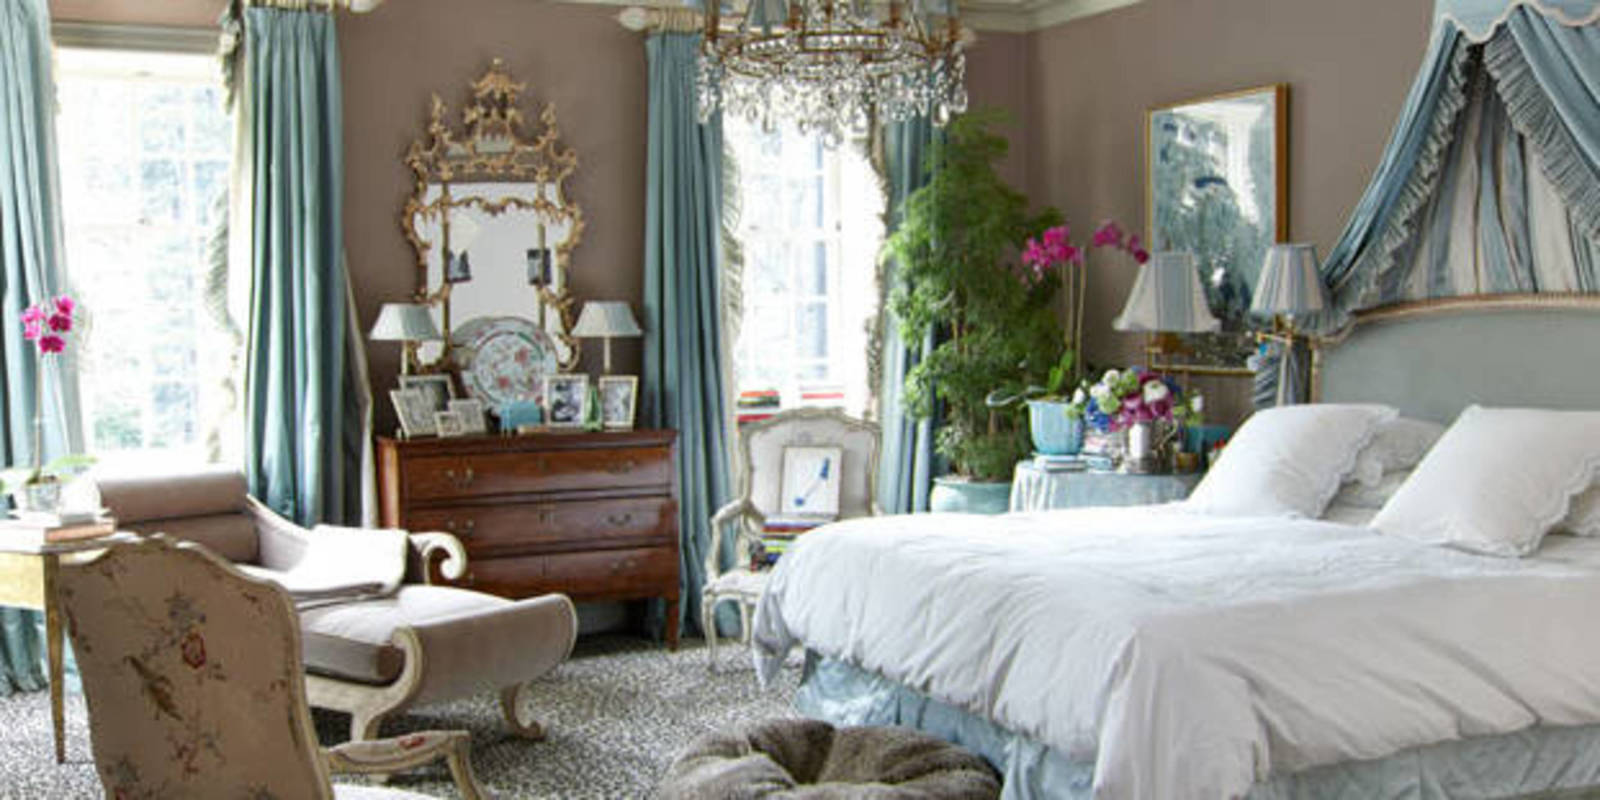 How to make a room romantic romantic decorating - How to decorate room ...